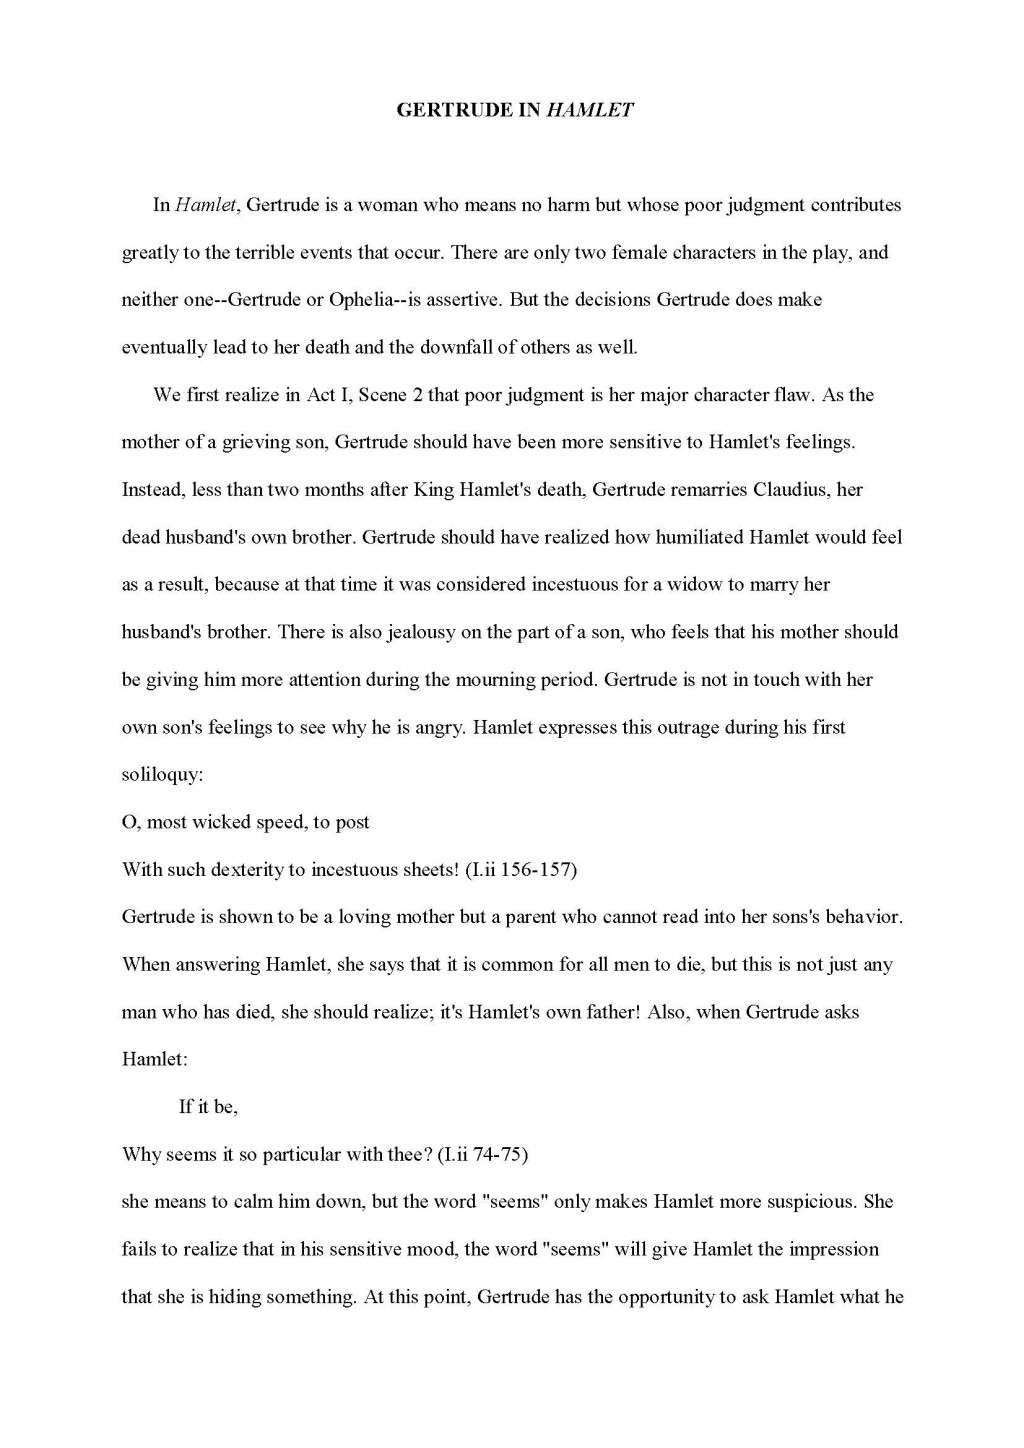 014 Outline Essay Analysis Sample Fascinating About Immigration Tok Structure Definition Large